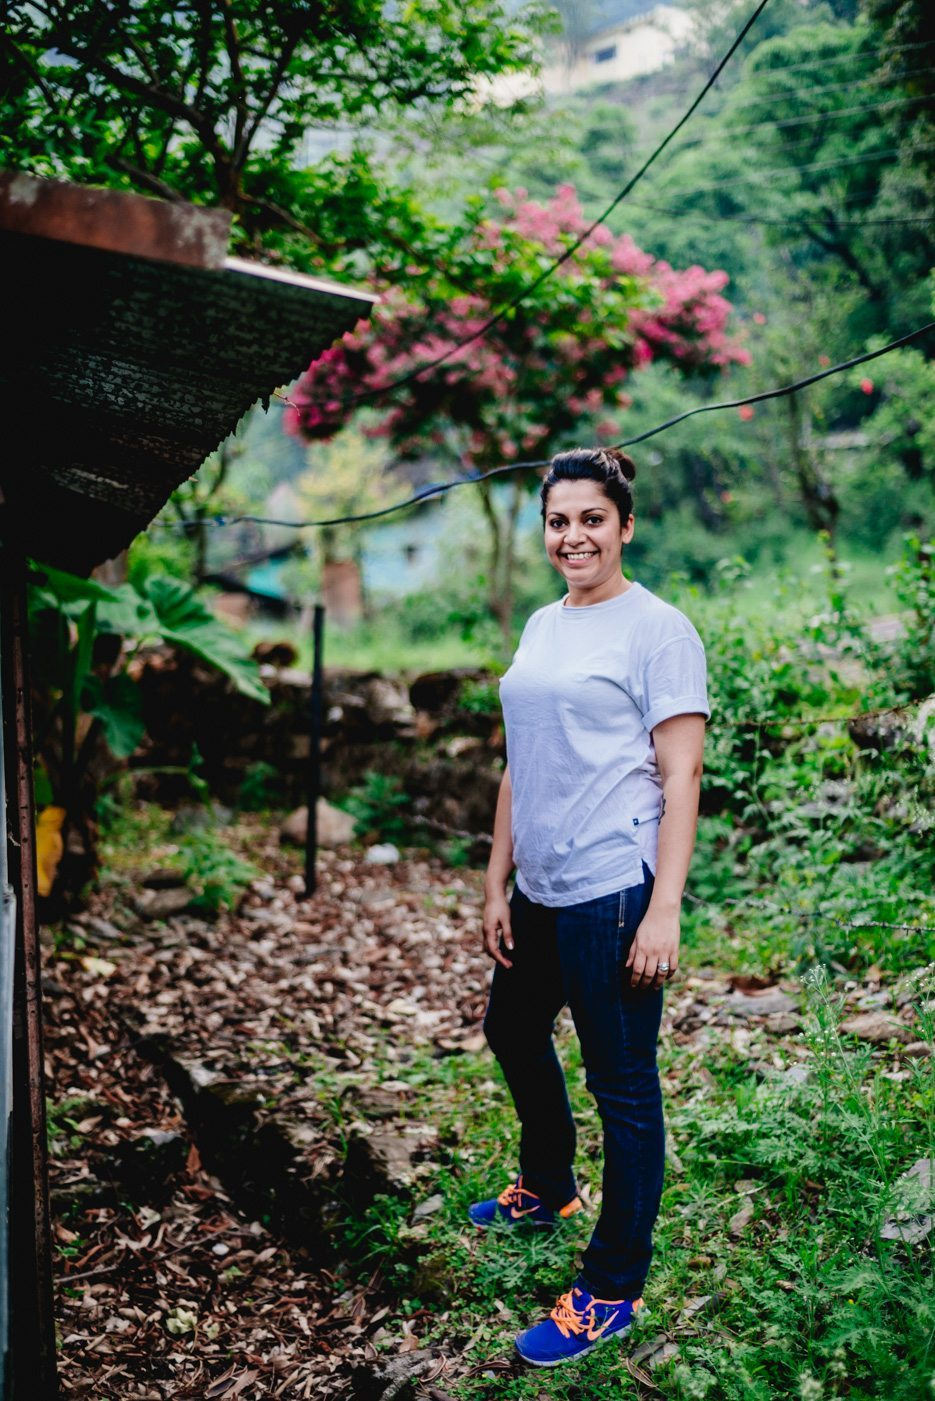 Naina.co-Photographer-Raconteuse-Storyteller-Luxury-Lifestyle-Dharchula-EyesForTravel-EyesForIndia-Old-Home